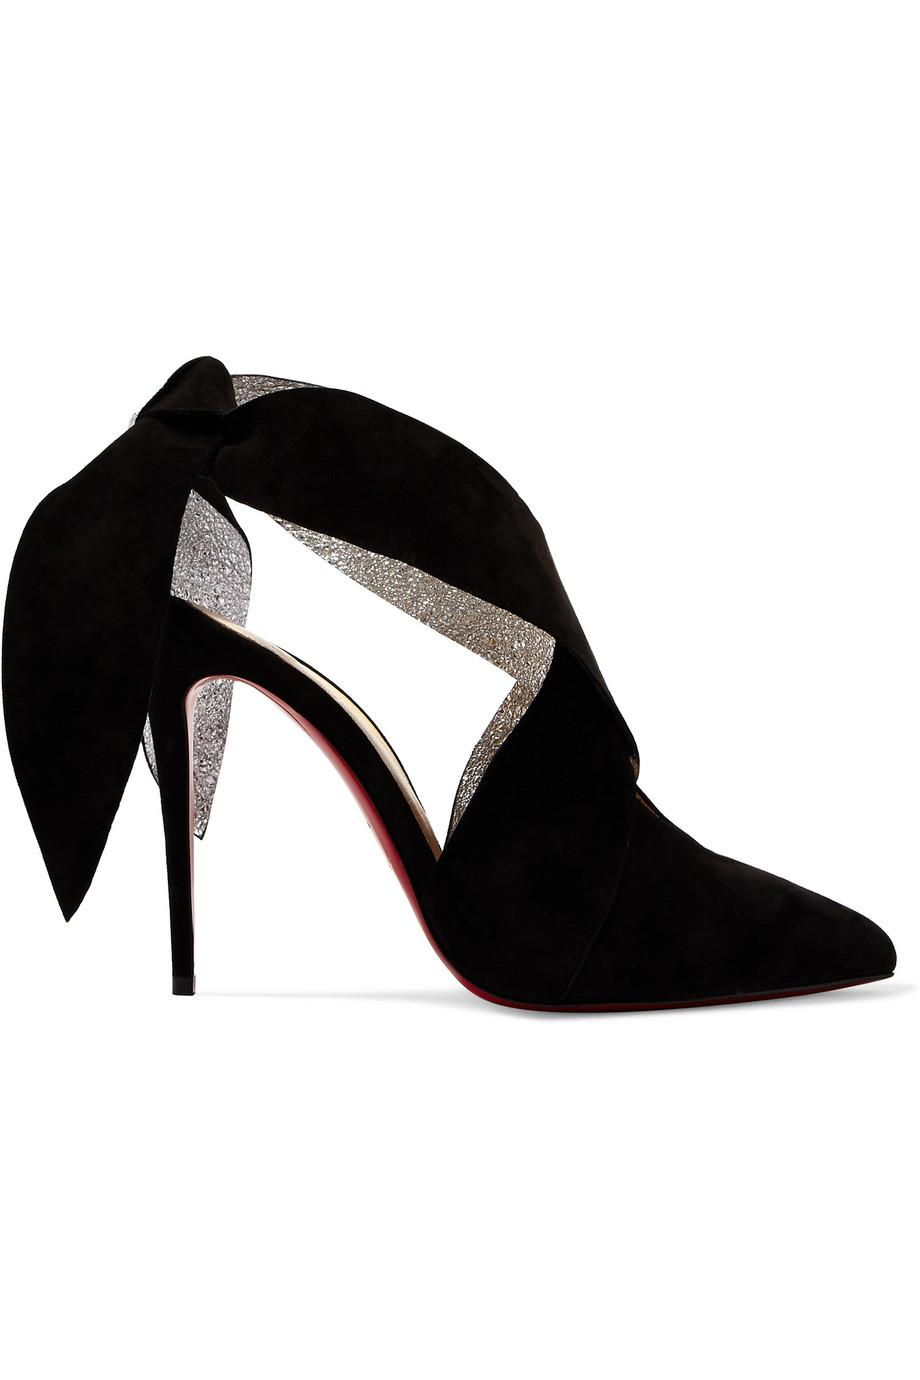 + Roland Mouret Ramour 100 Suede And Metallic Textured-leather Pumps - Black Christian Louboutin